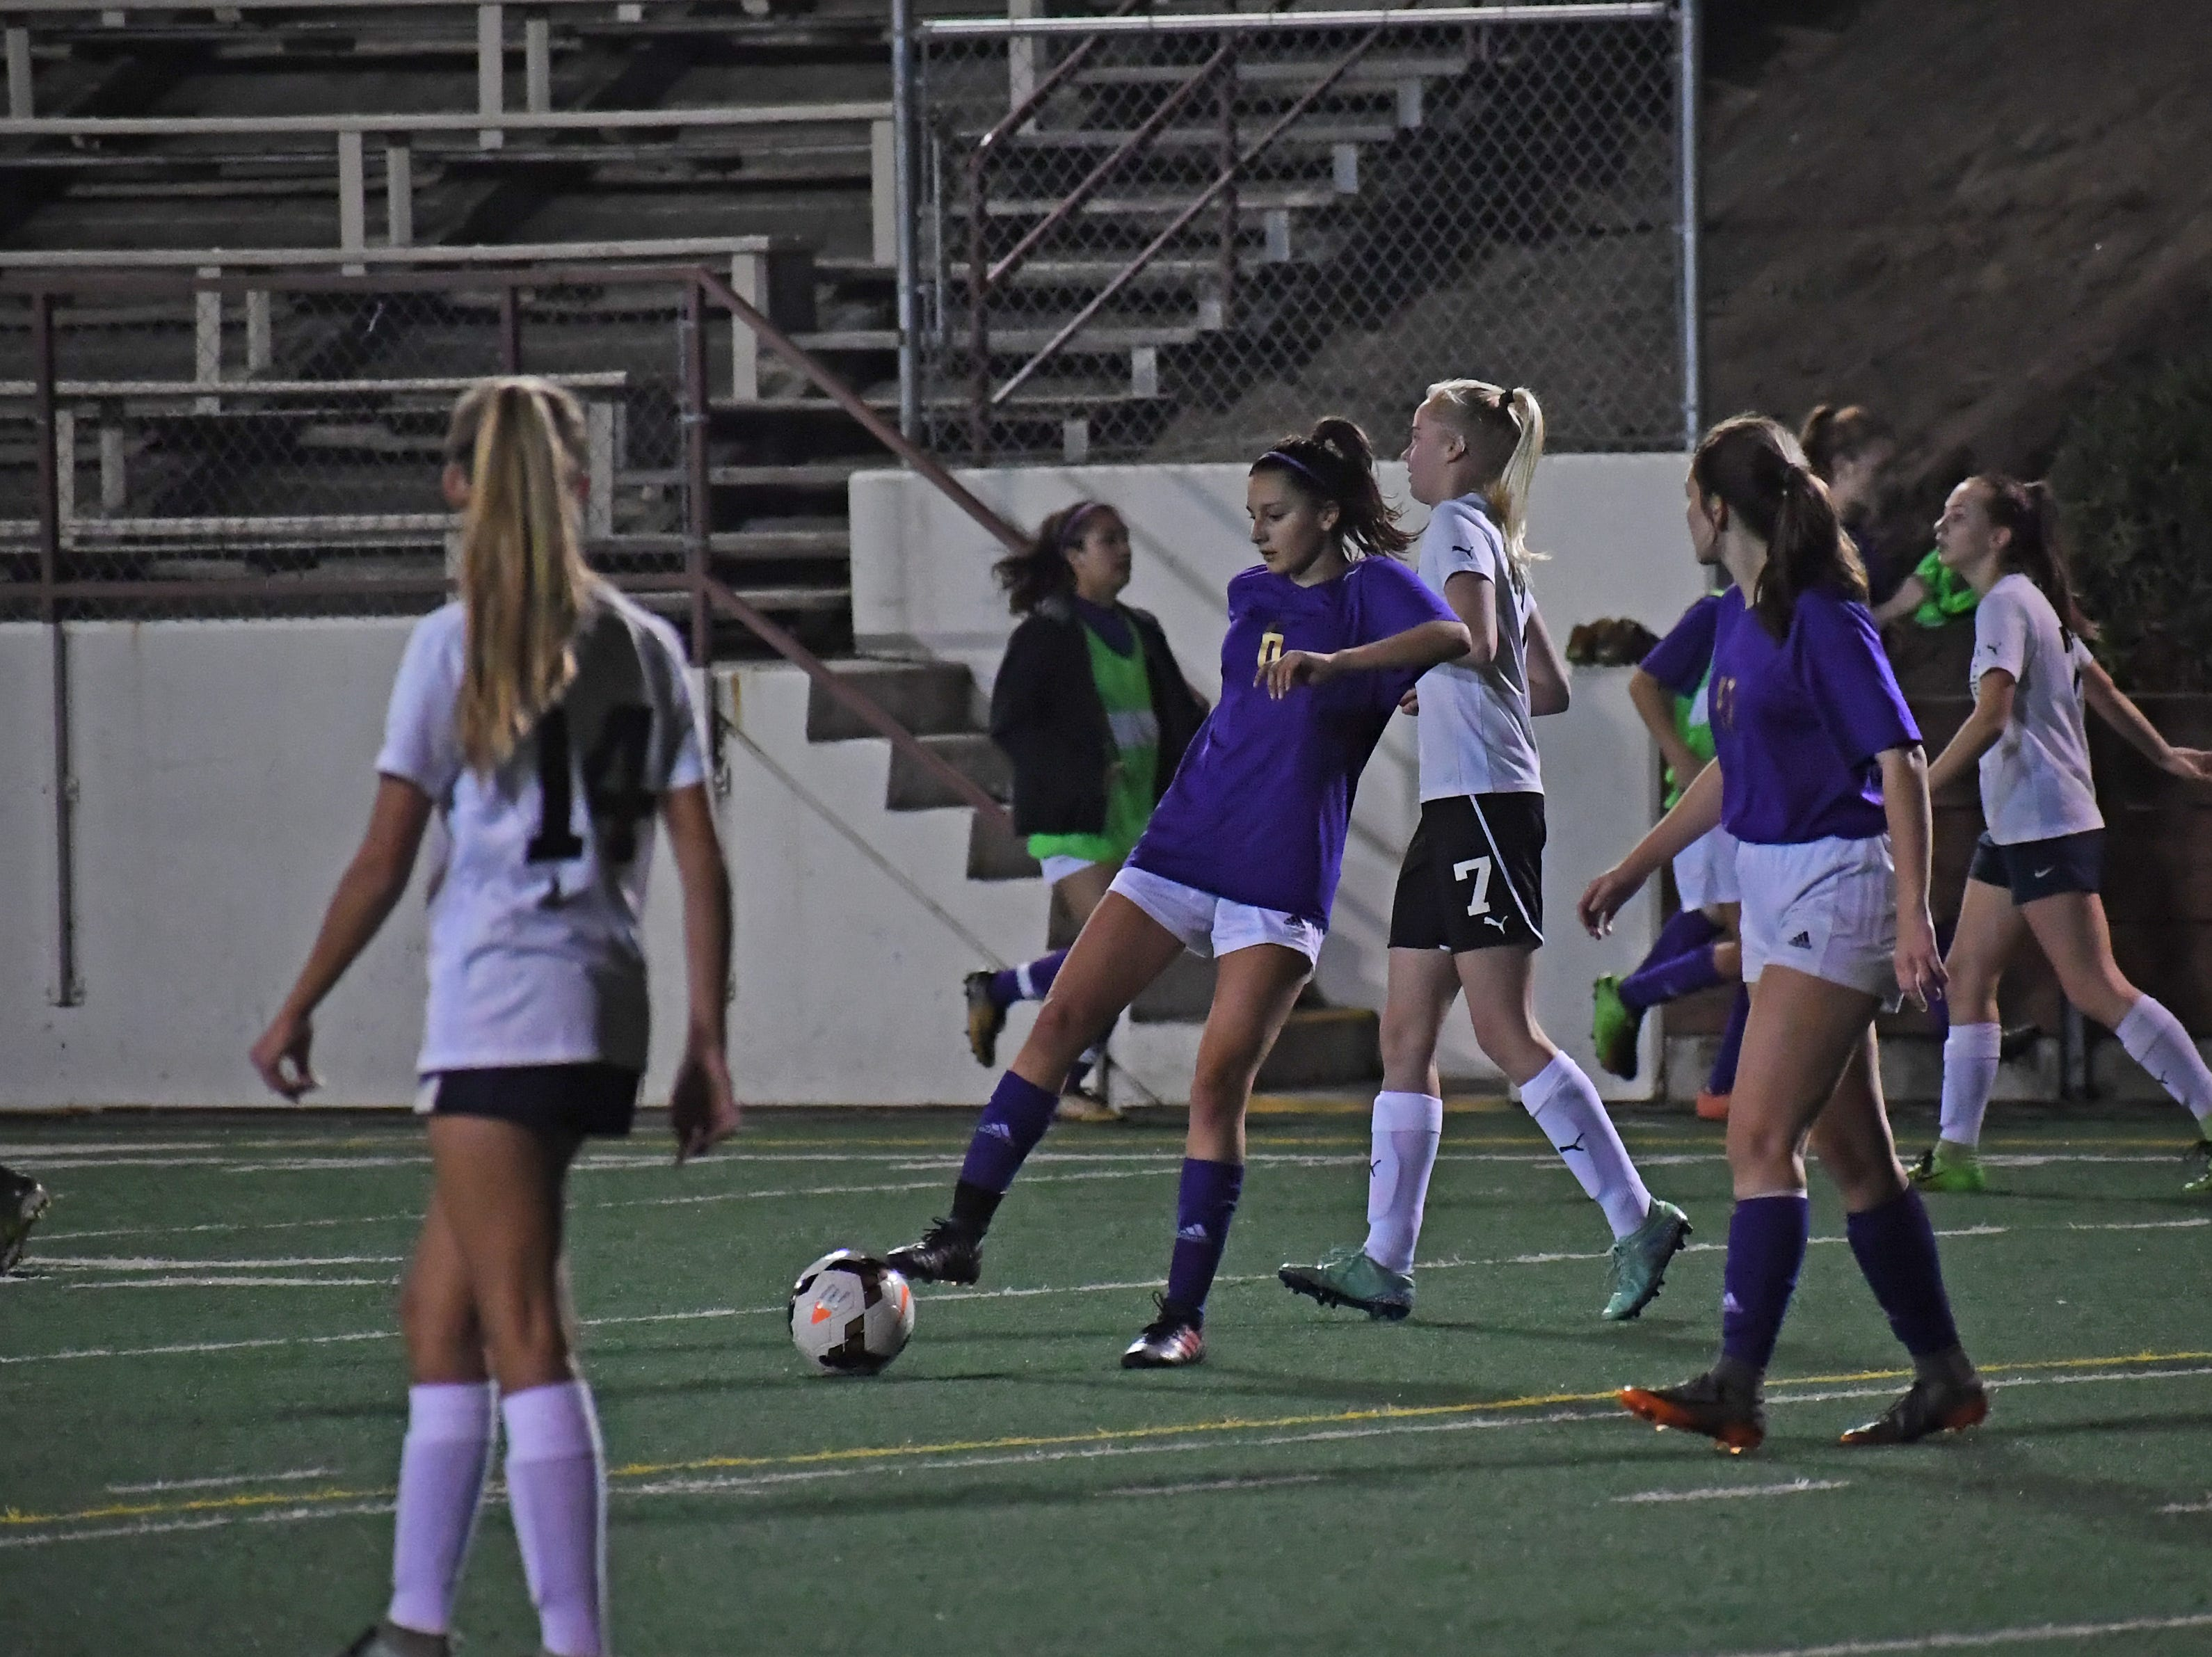 Junior Vivianne Mendoza (6) sets up the ball for a free kick.